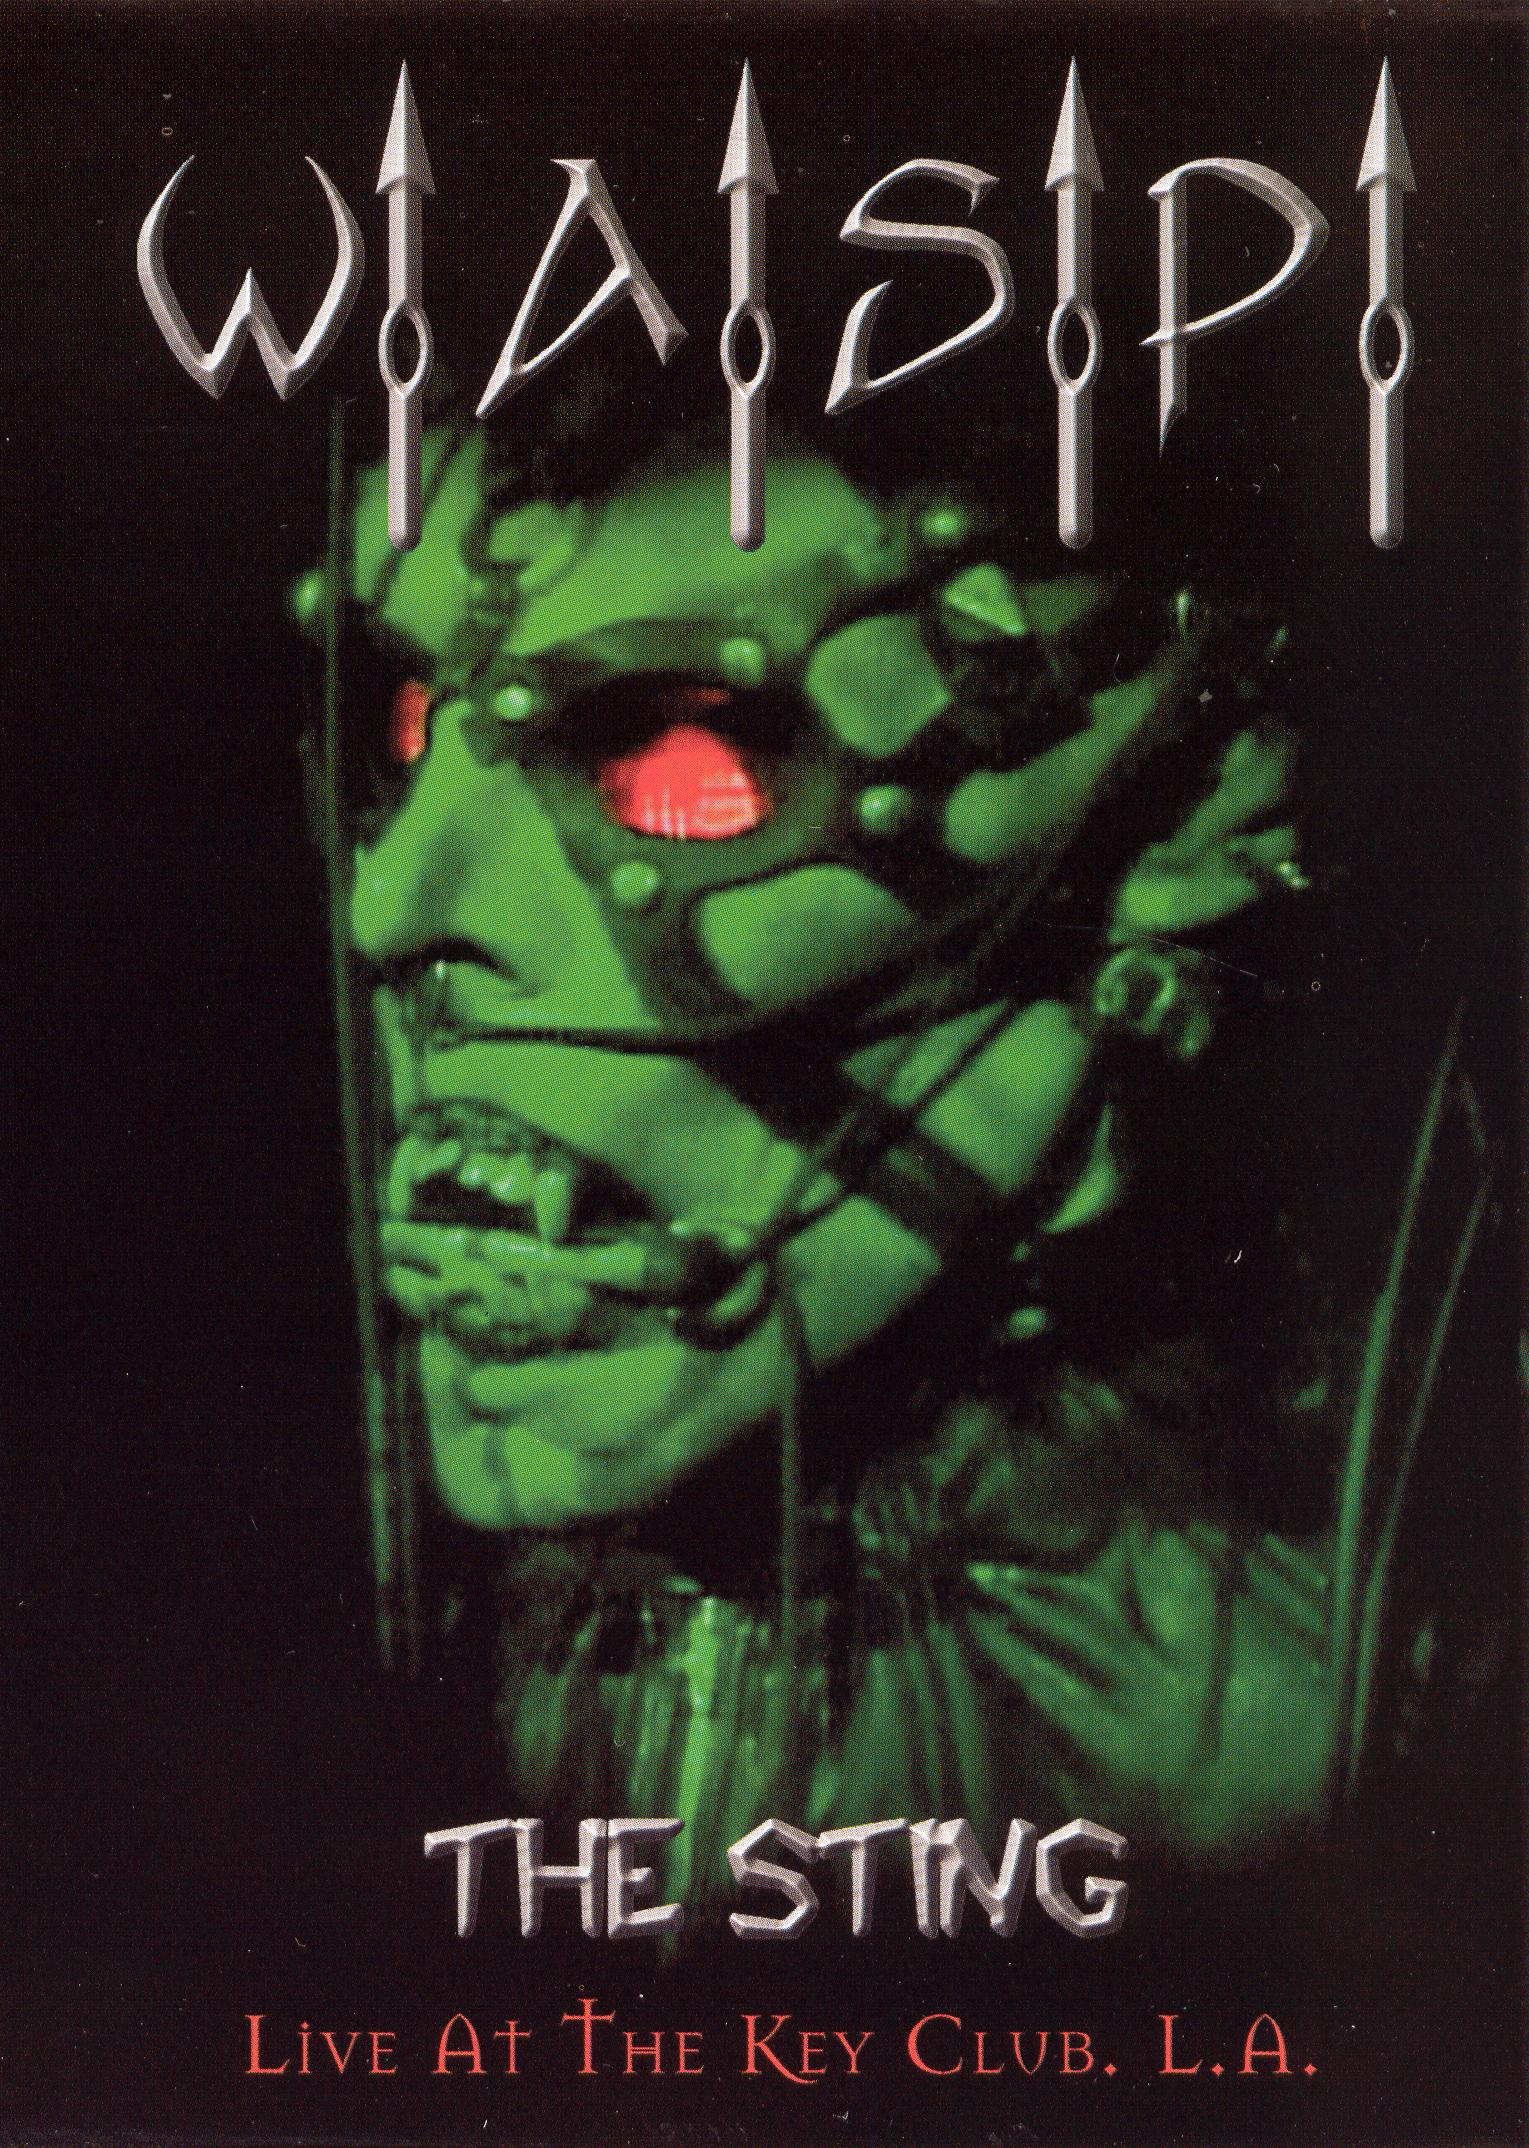 W.A.S.P.: The Sting - Live at the Key Club - L.A.